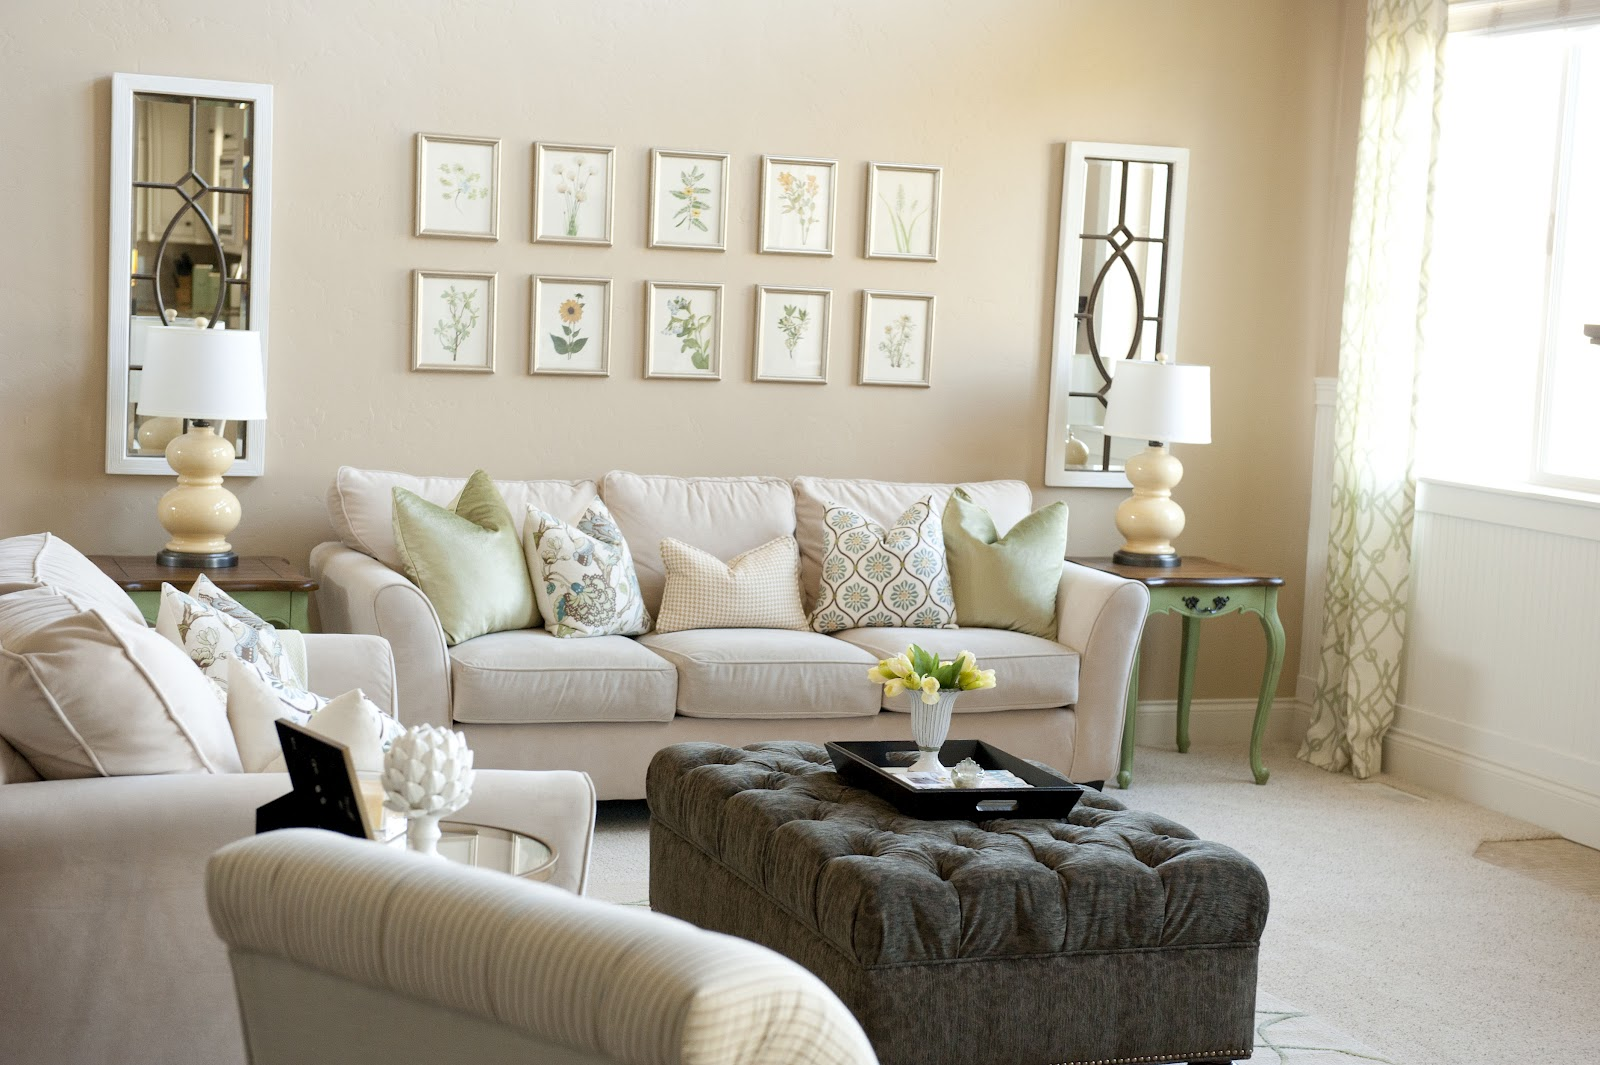 Paint Colors in My Home - Sita Montgomery Interiors